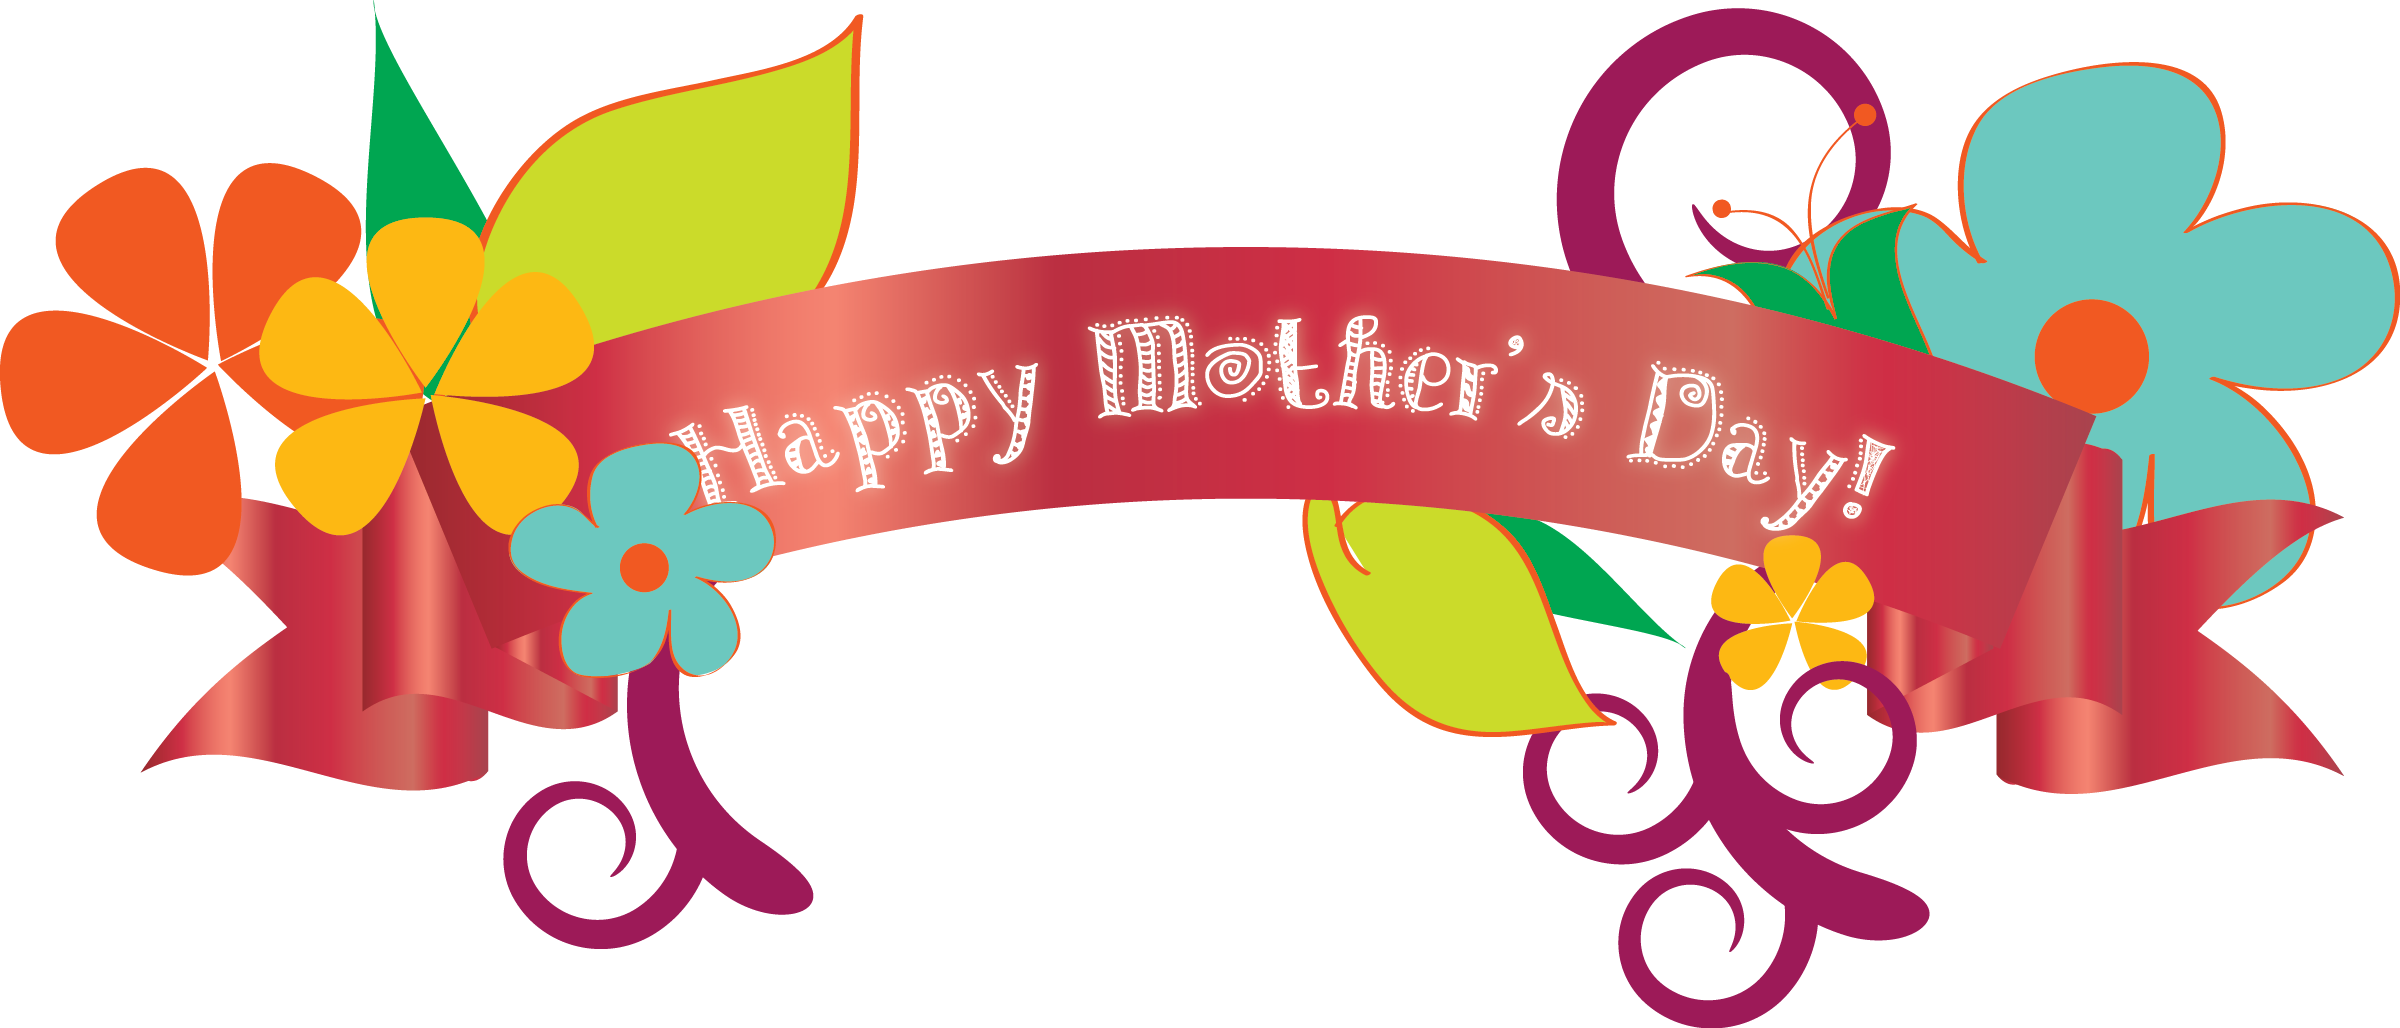 Download Mothers Day Clipart HQ PNG Image.